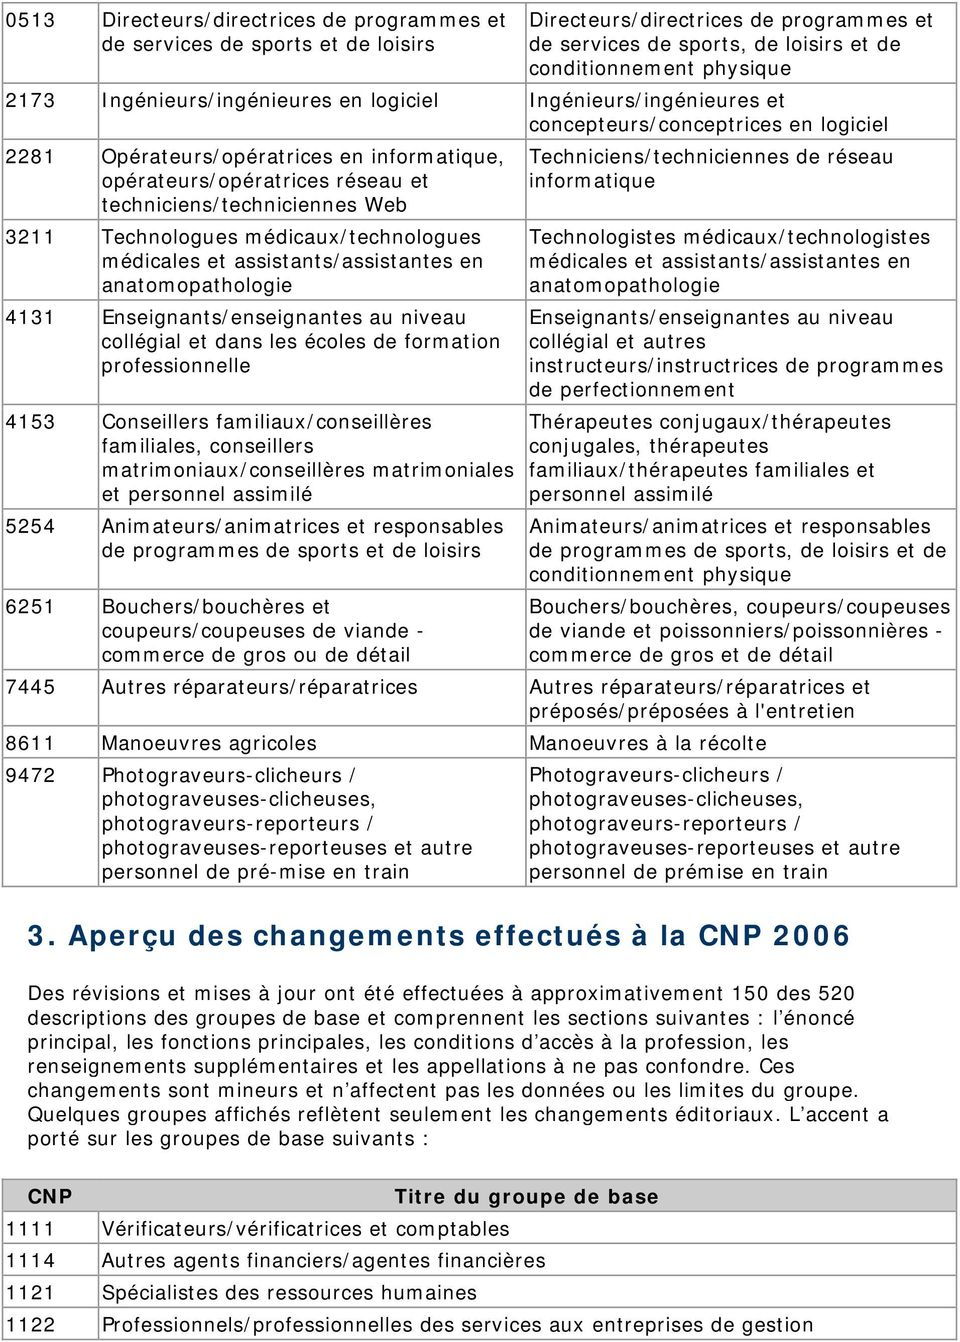 techniciens/techniciennes Web 3211 Technologues médicaux/technologues médicales et assistants/assistantes en anatomopathologie 4131 Enseignants/enseignantes au niveau collégial et dans les écoles de